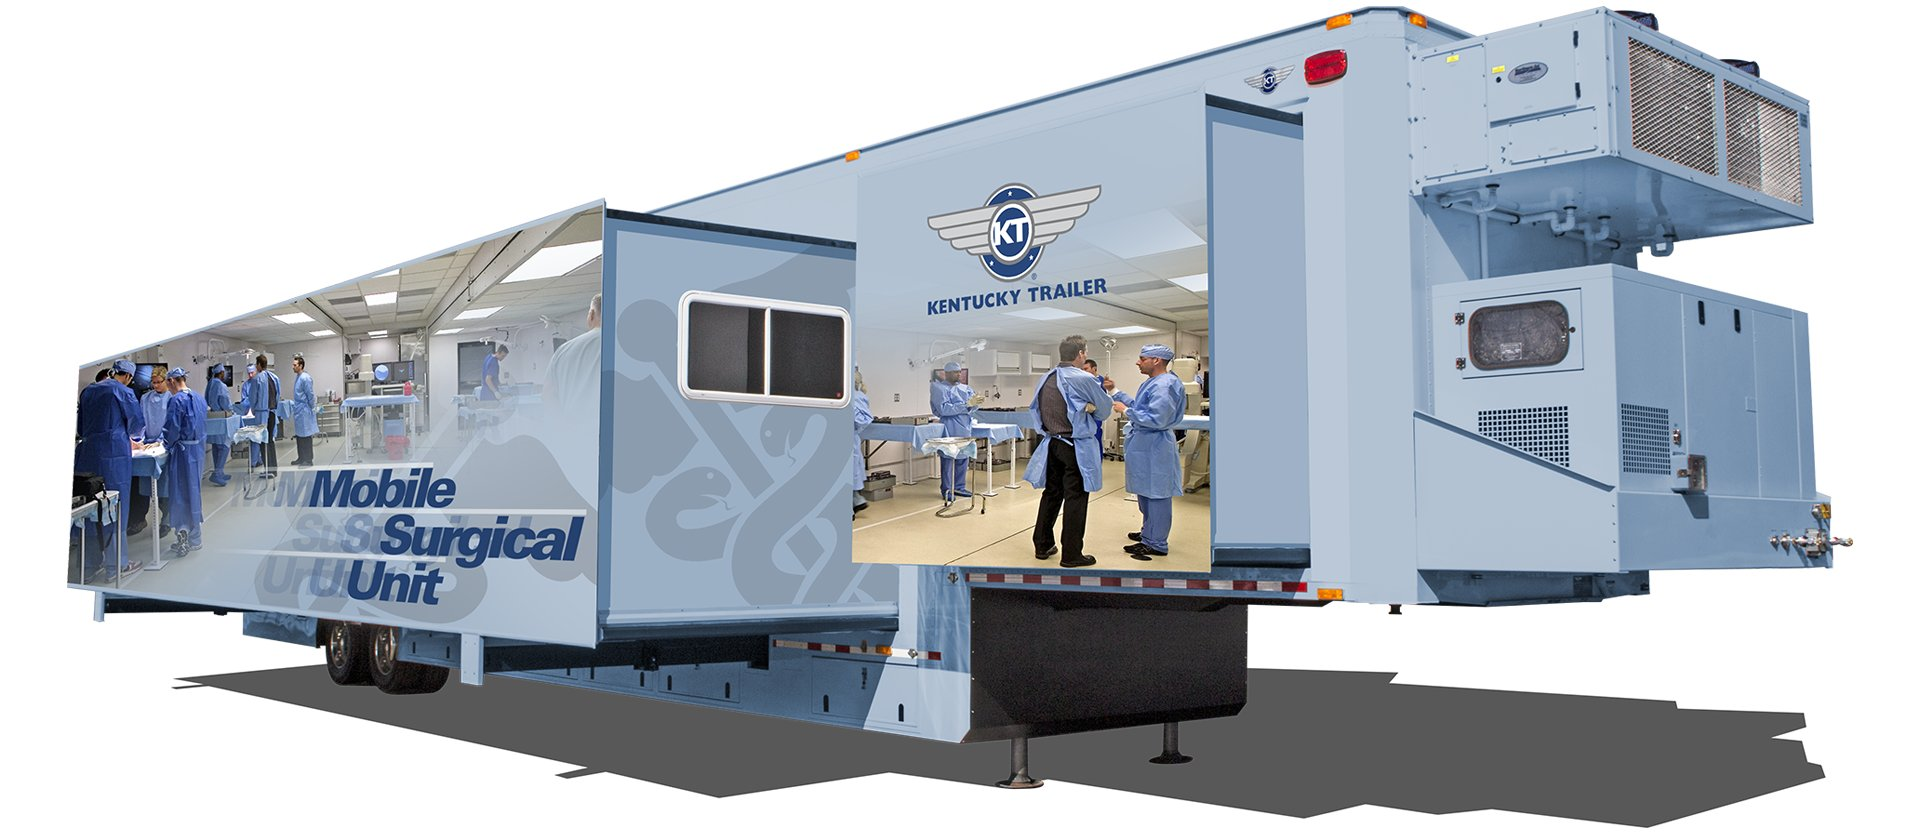 Mobile Surgical Unit Mobile Medical Specialty Trailers